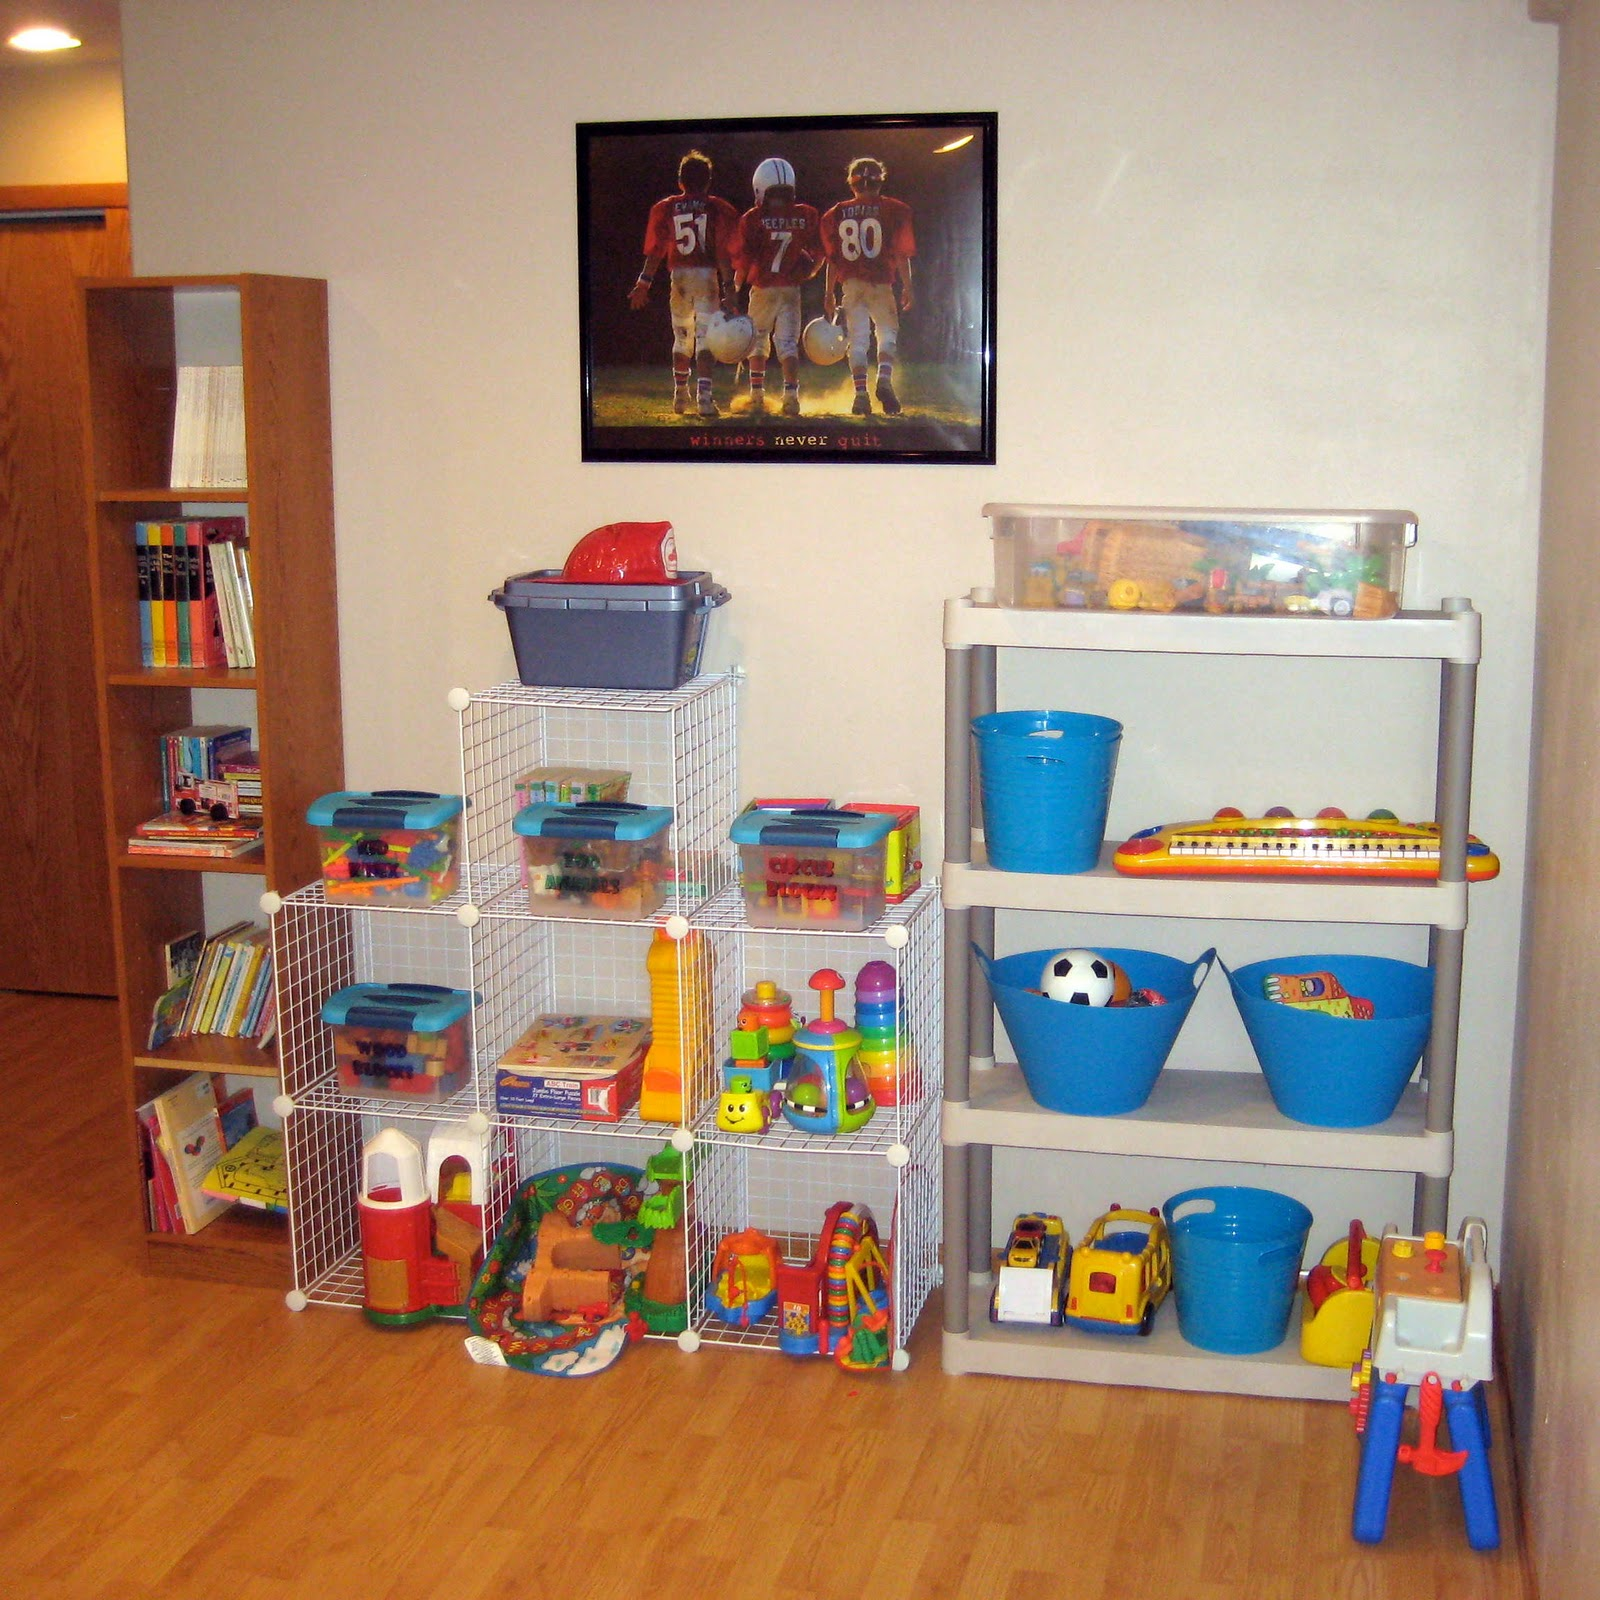 cobo toy room organization